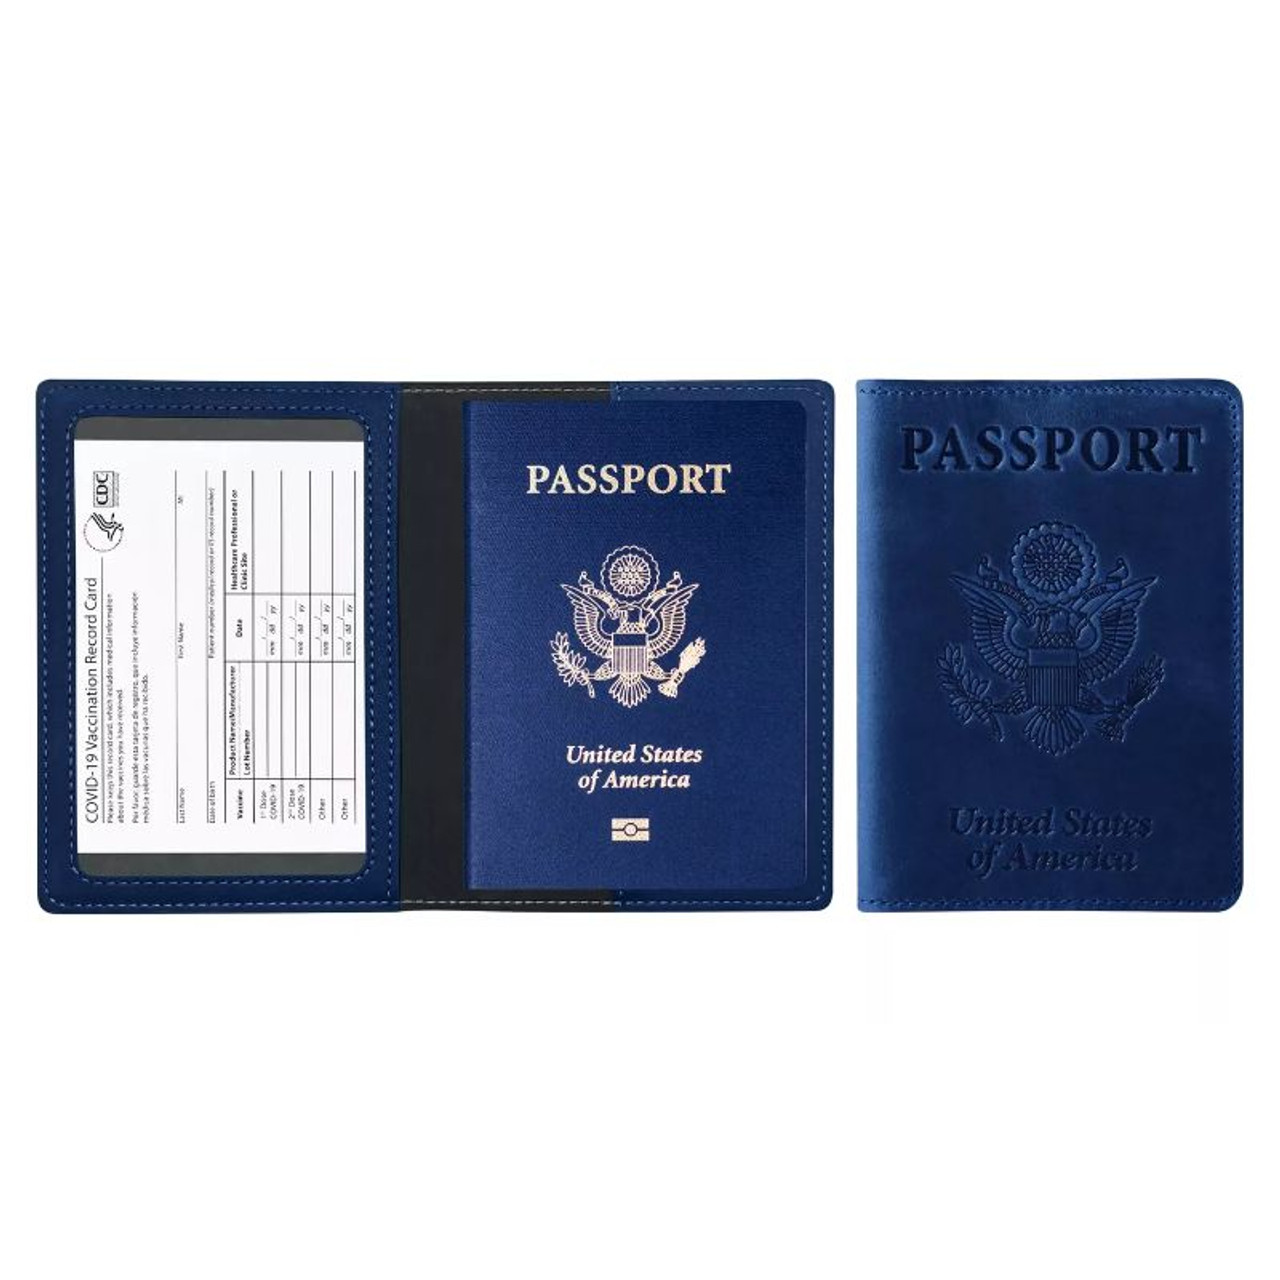 Passport Holder with Vaccination Card Slot